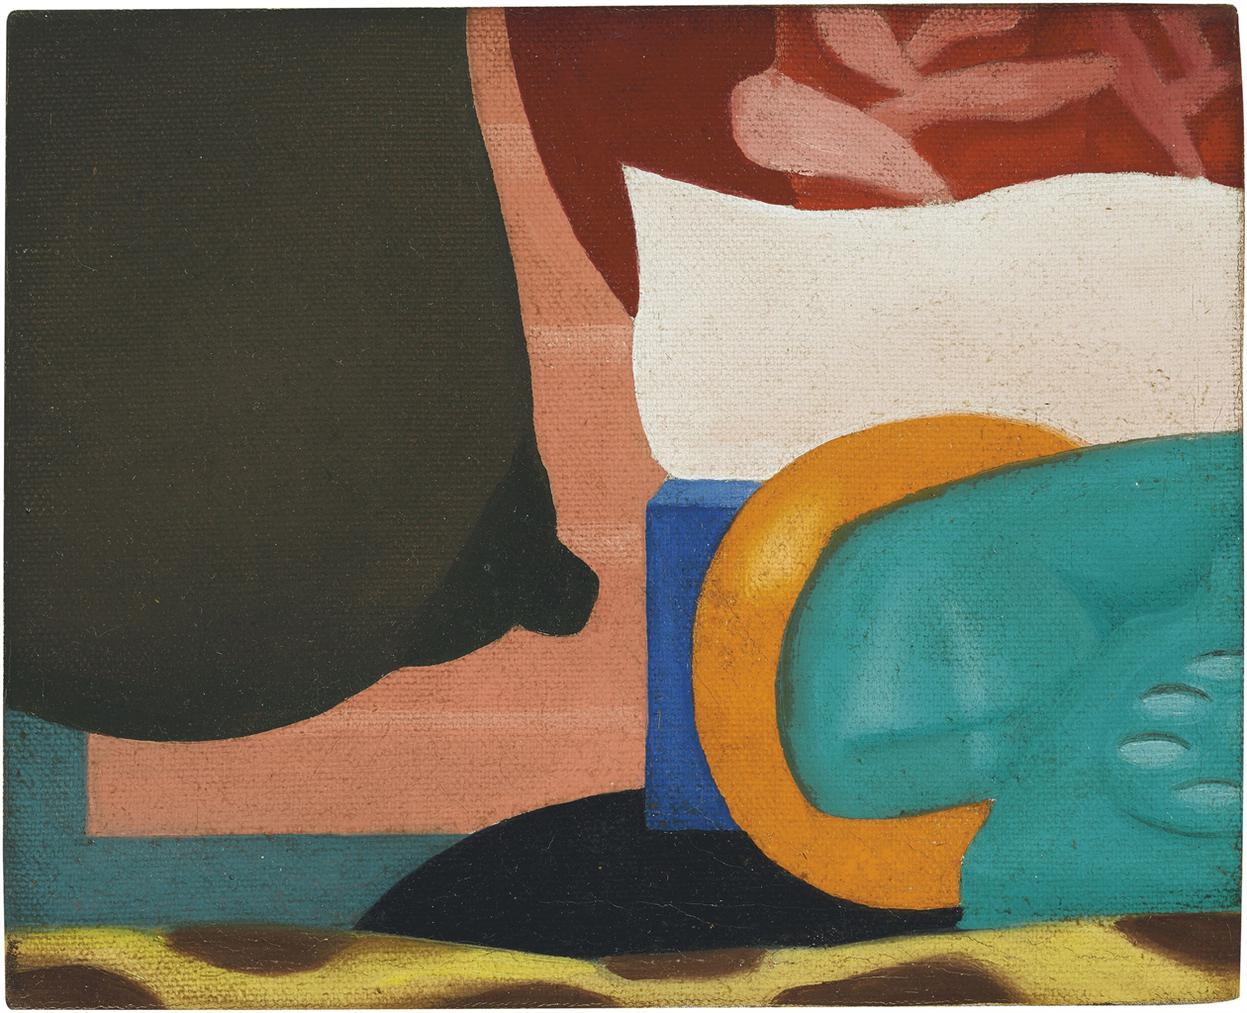 Tom Wesselmann-Study For Bedroom Painting No. 11-1968